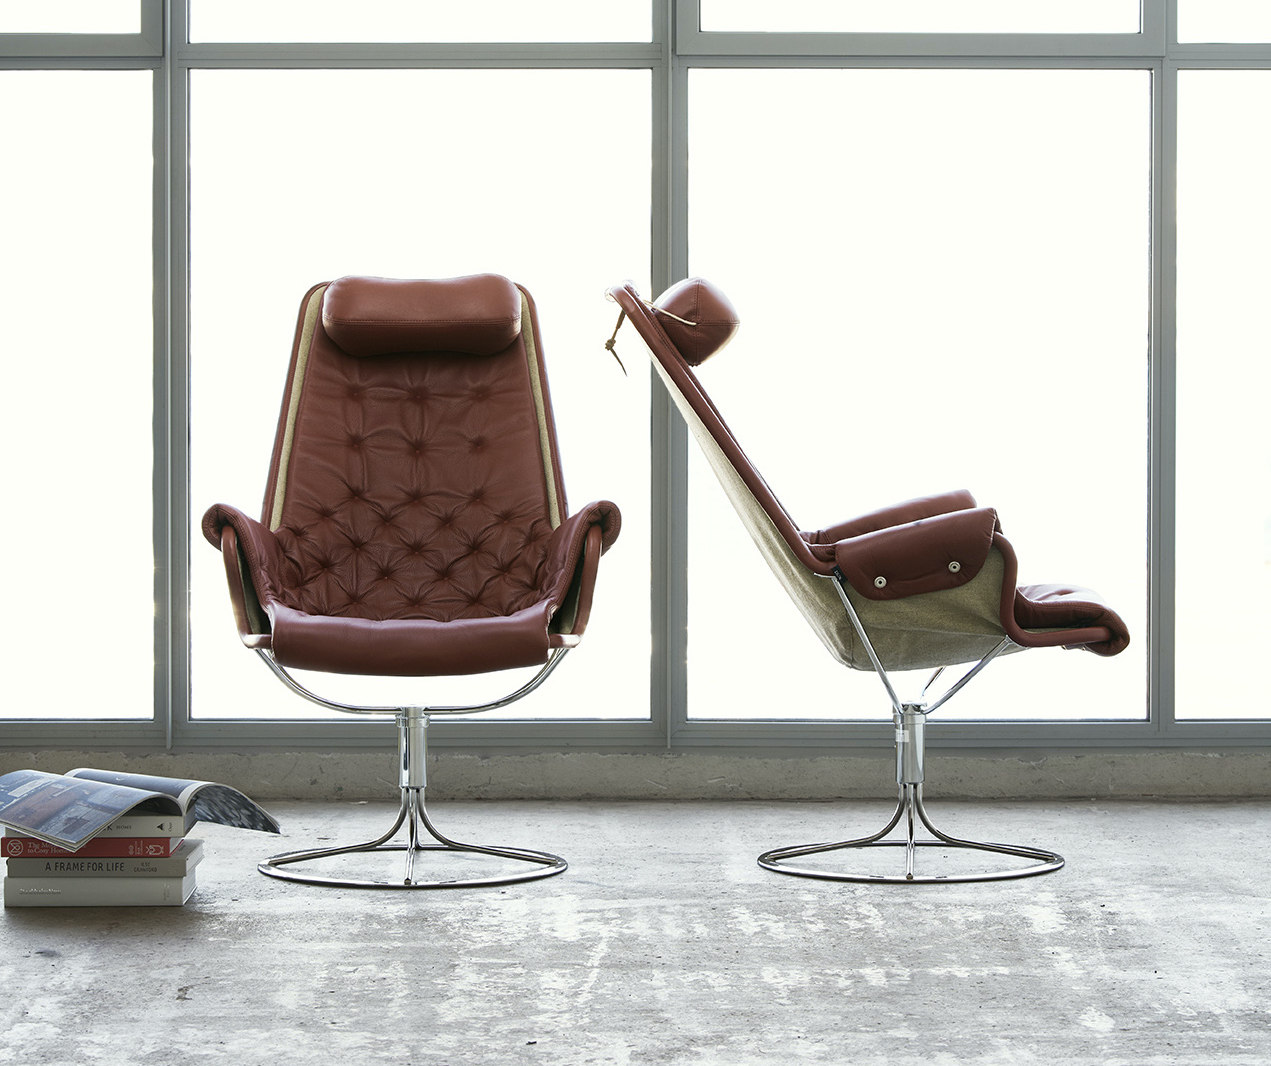 Object Lessons: The Iconic Swedish Jetson Chair, Now Available in the US